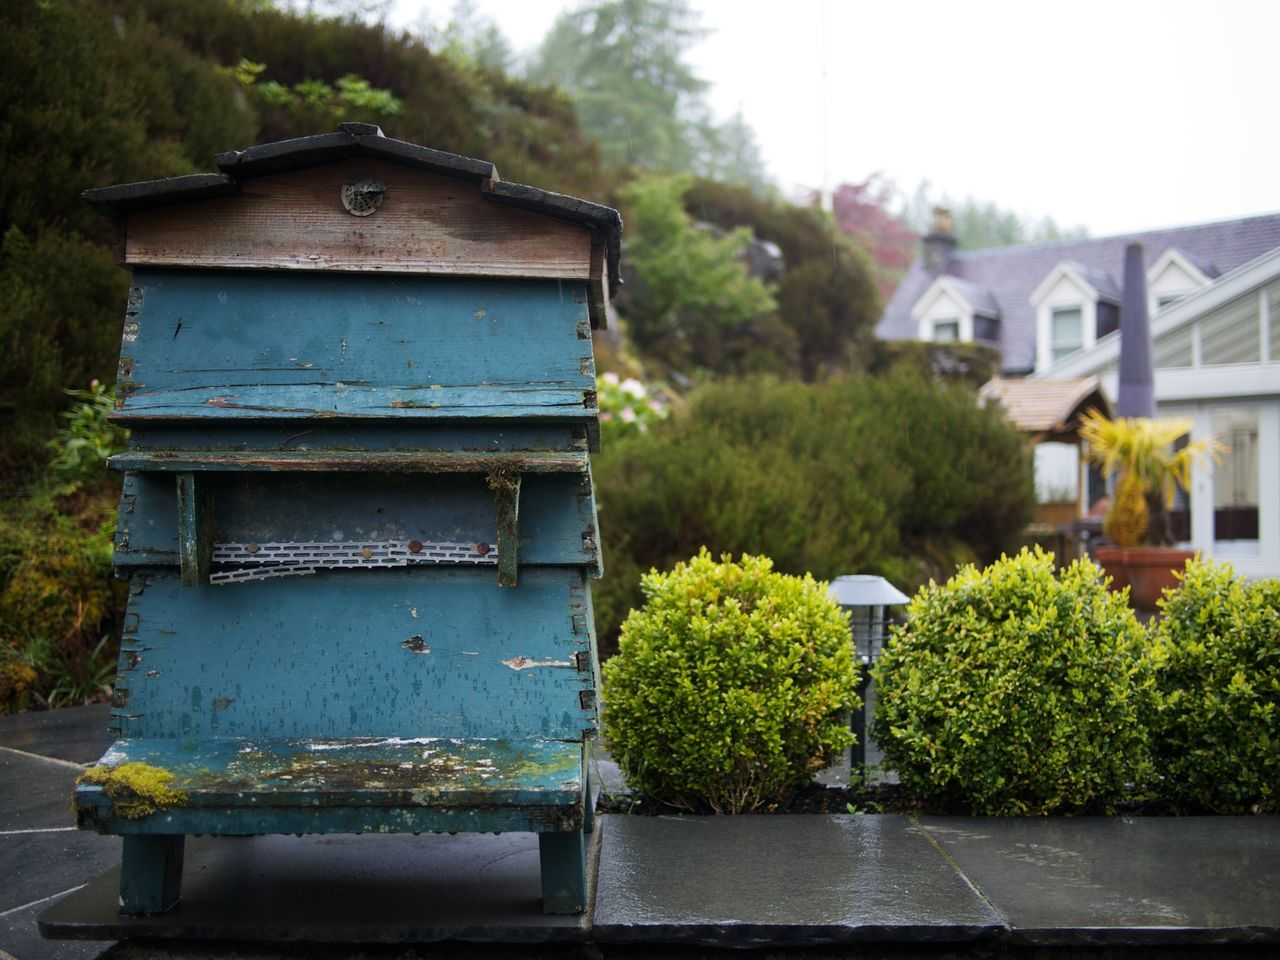 tree, no people, day, outdoors, built structure, architecture, beehive, public mailbox, building exterior, nature, growth, apiculture, close-up